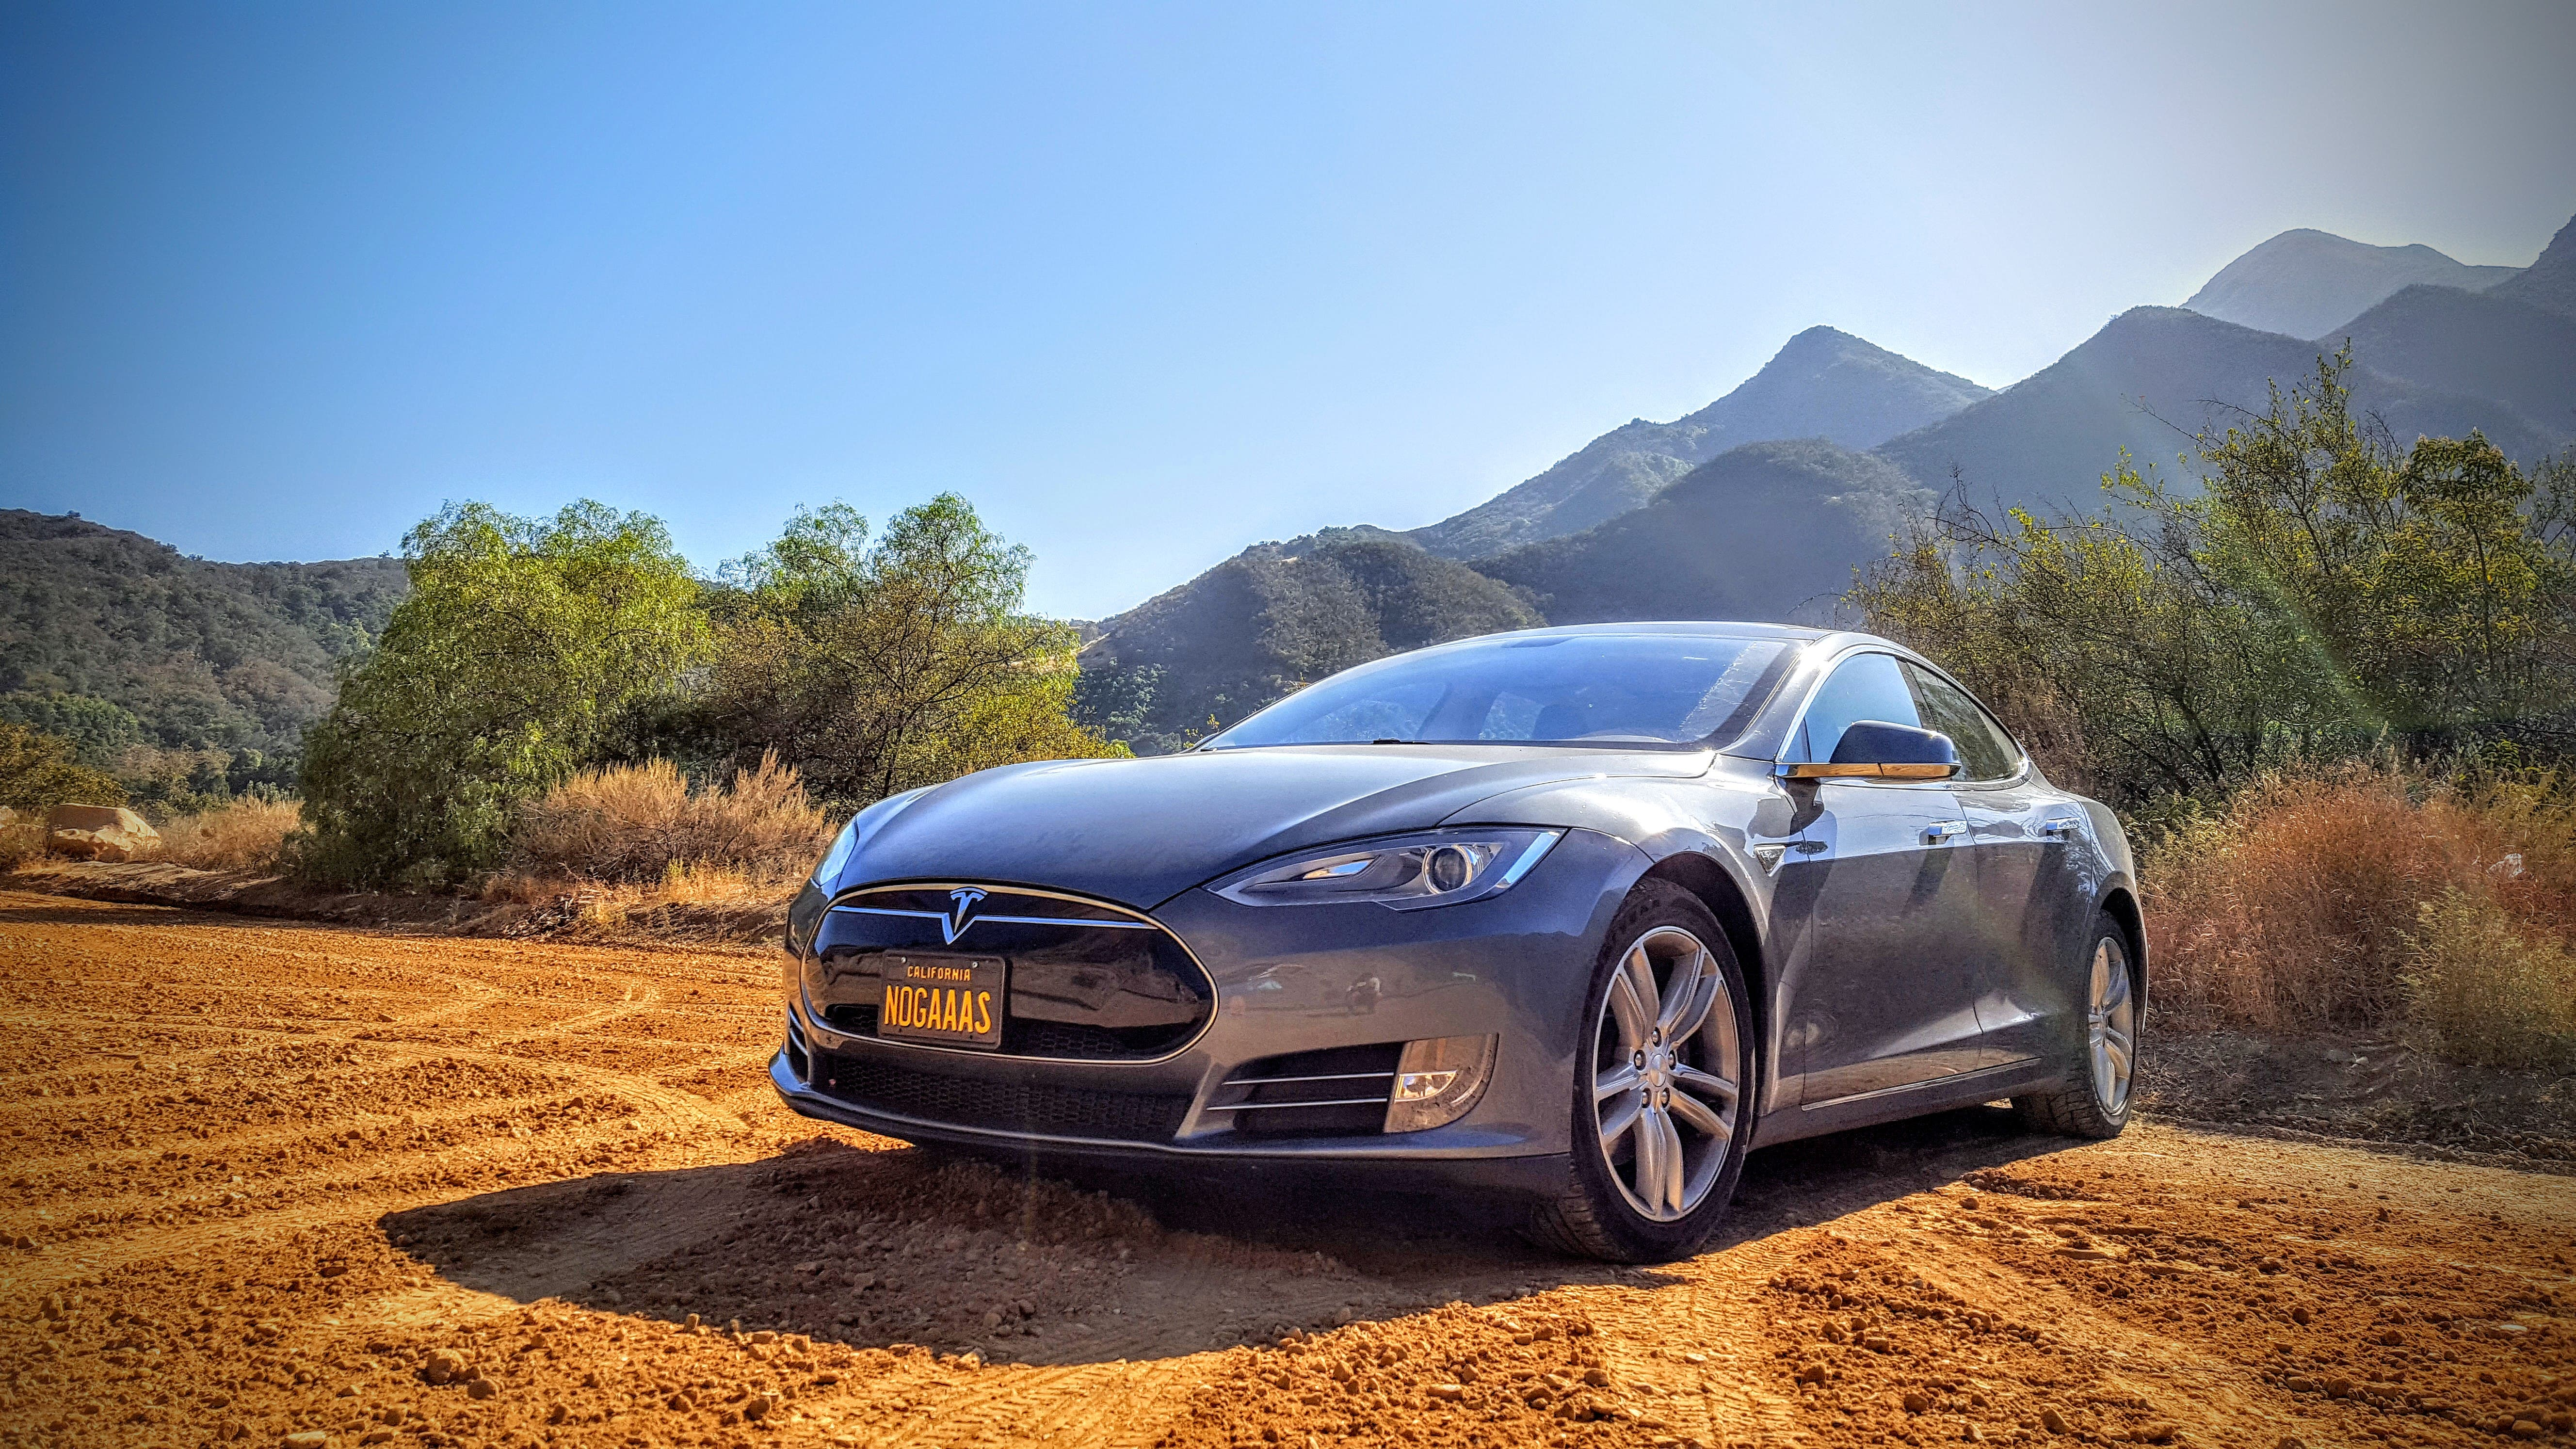 In Another Interaction With Tesla Service I Received A Proactive Call From To Schedule Replacement Of An Electrical Switch For The Battery